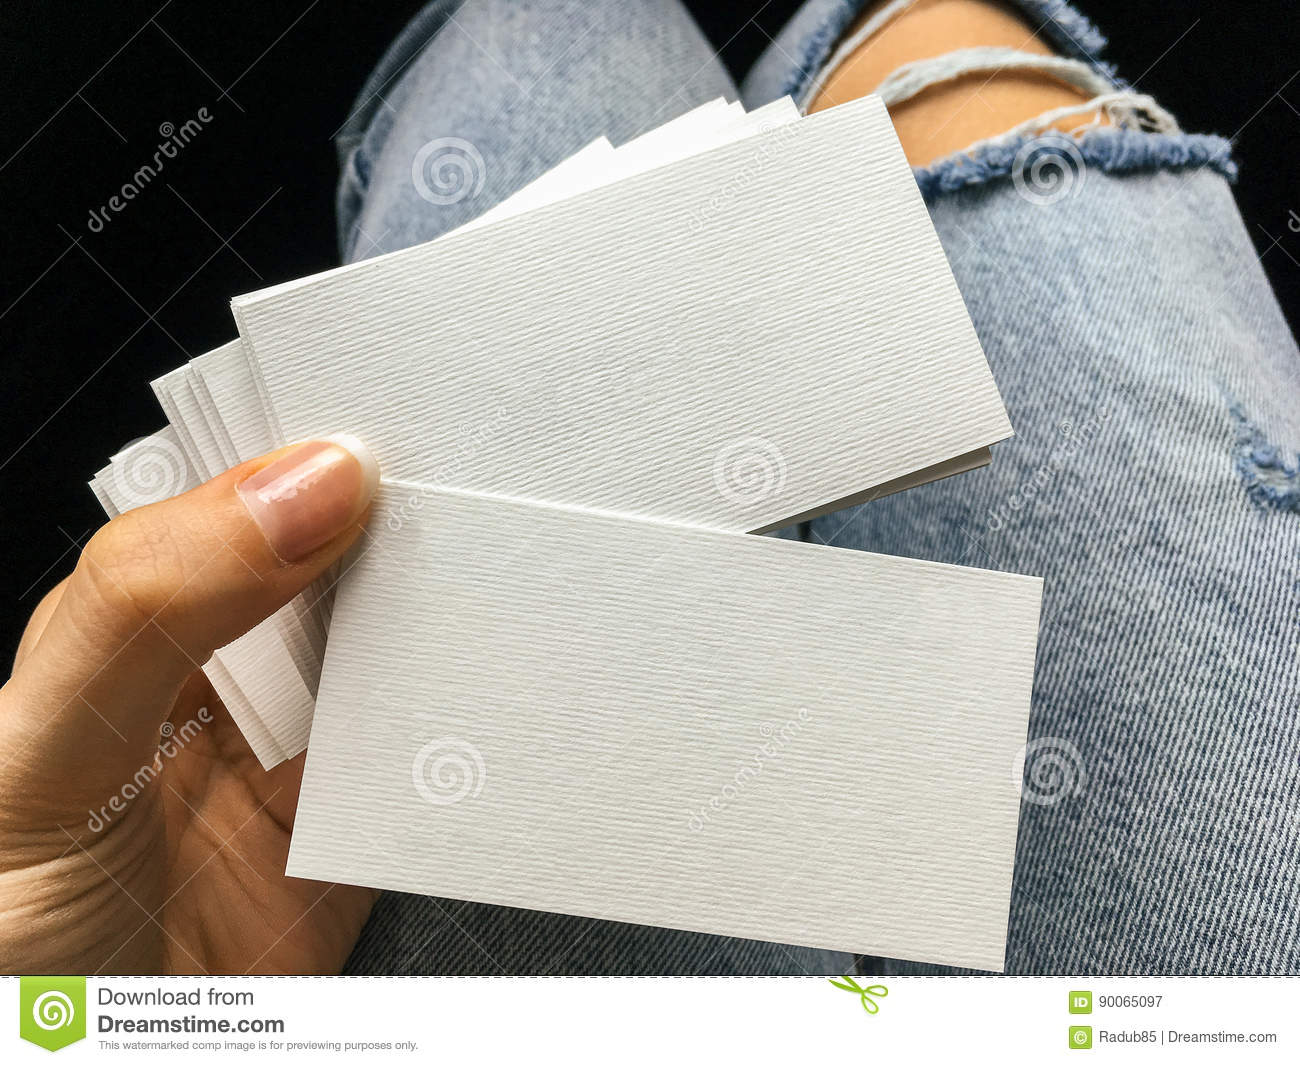 Blank business cards sheets choice image card design and card template blank business cards sheets choice image card design and card template young woman holding white blank reheart Images